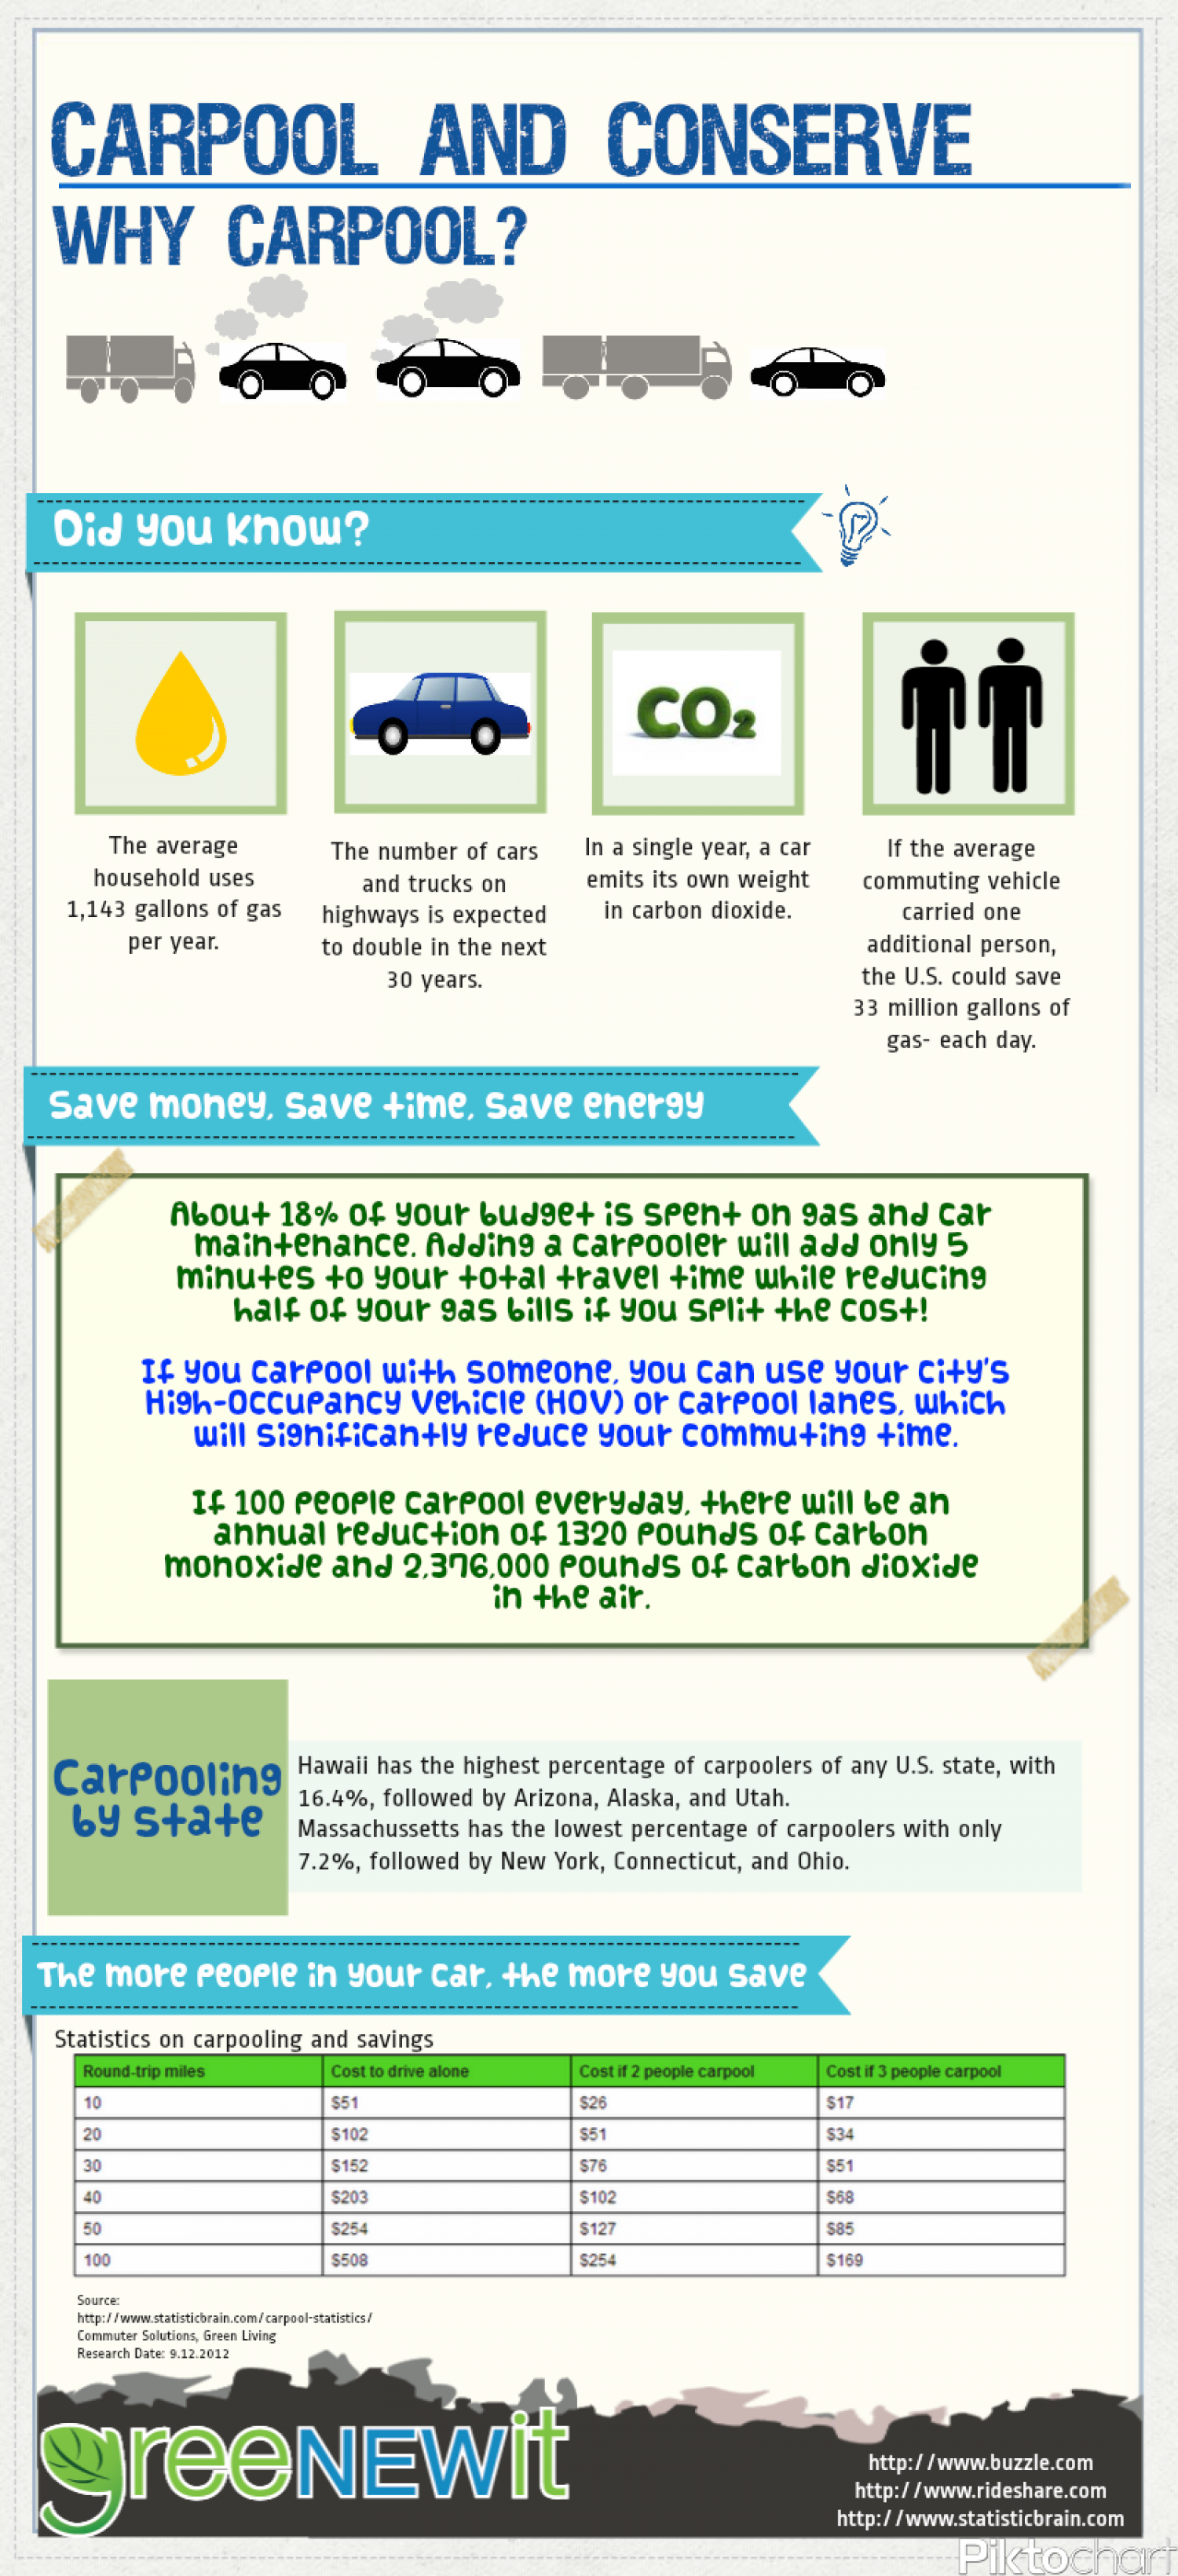 Carpool and Conserve Infographic